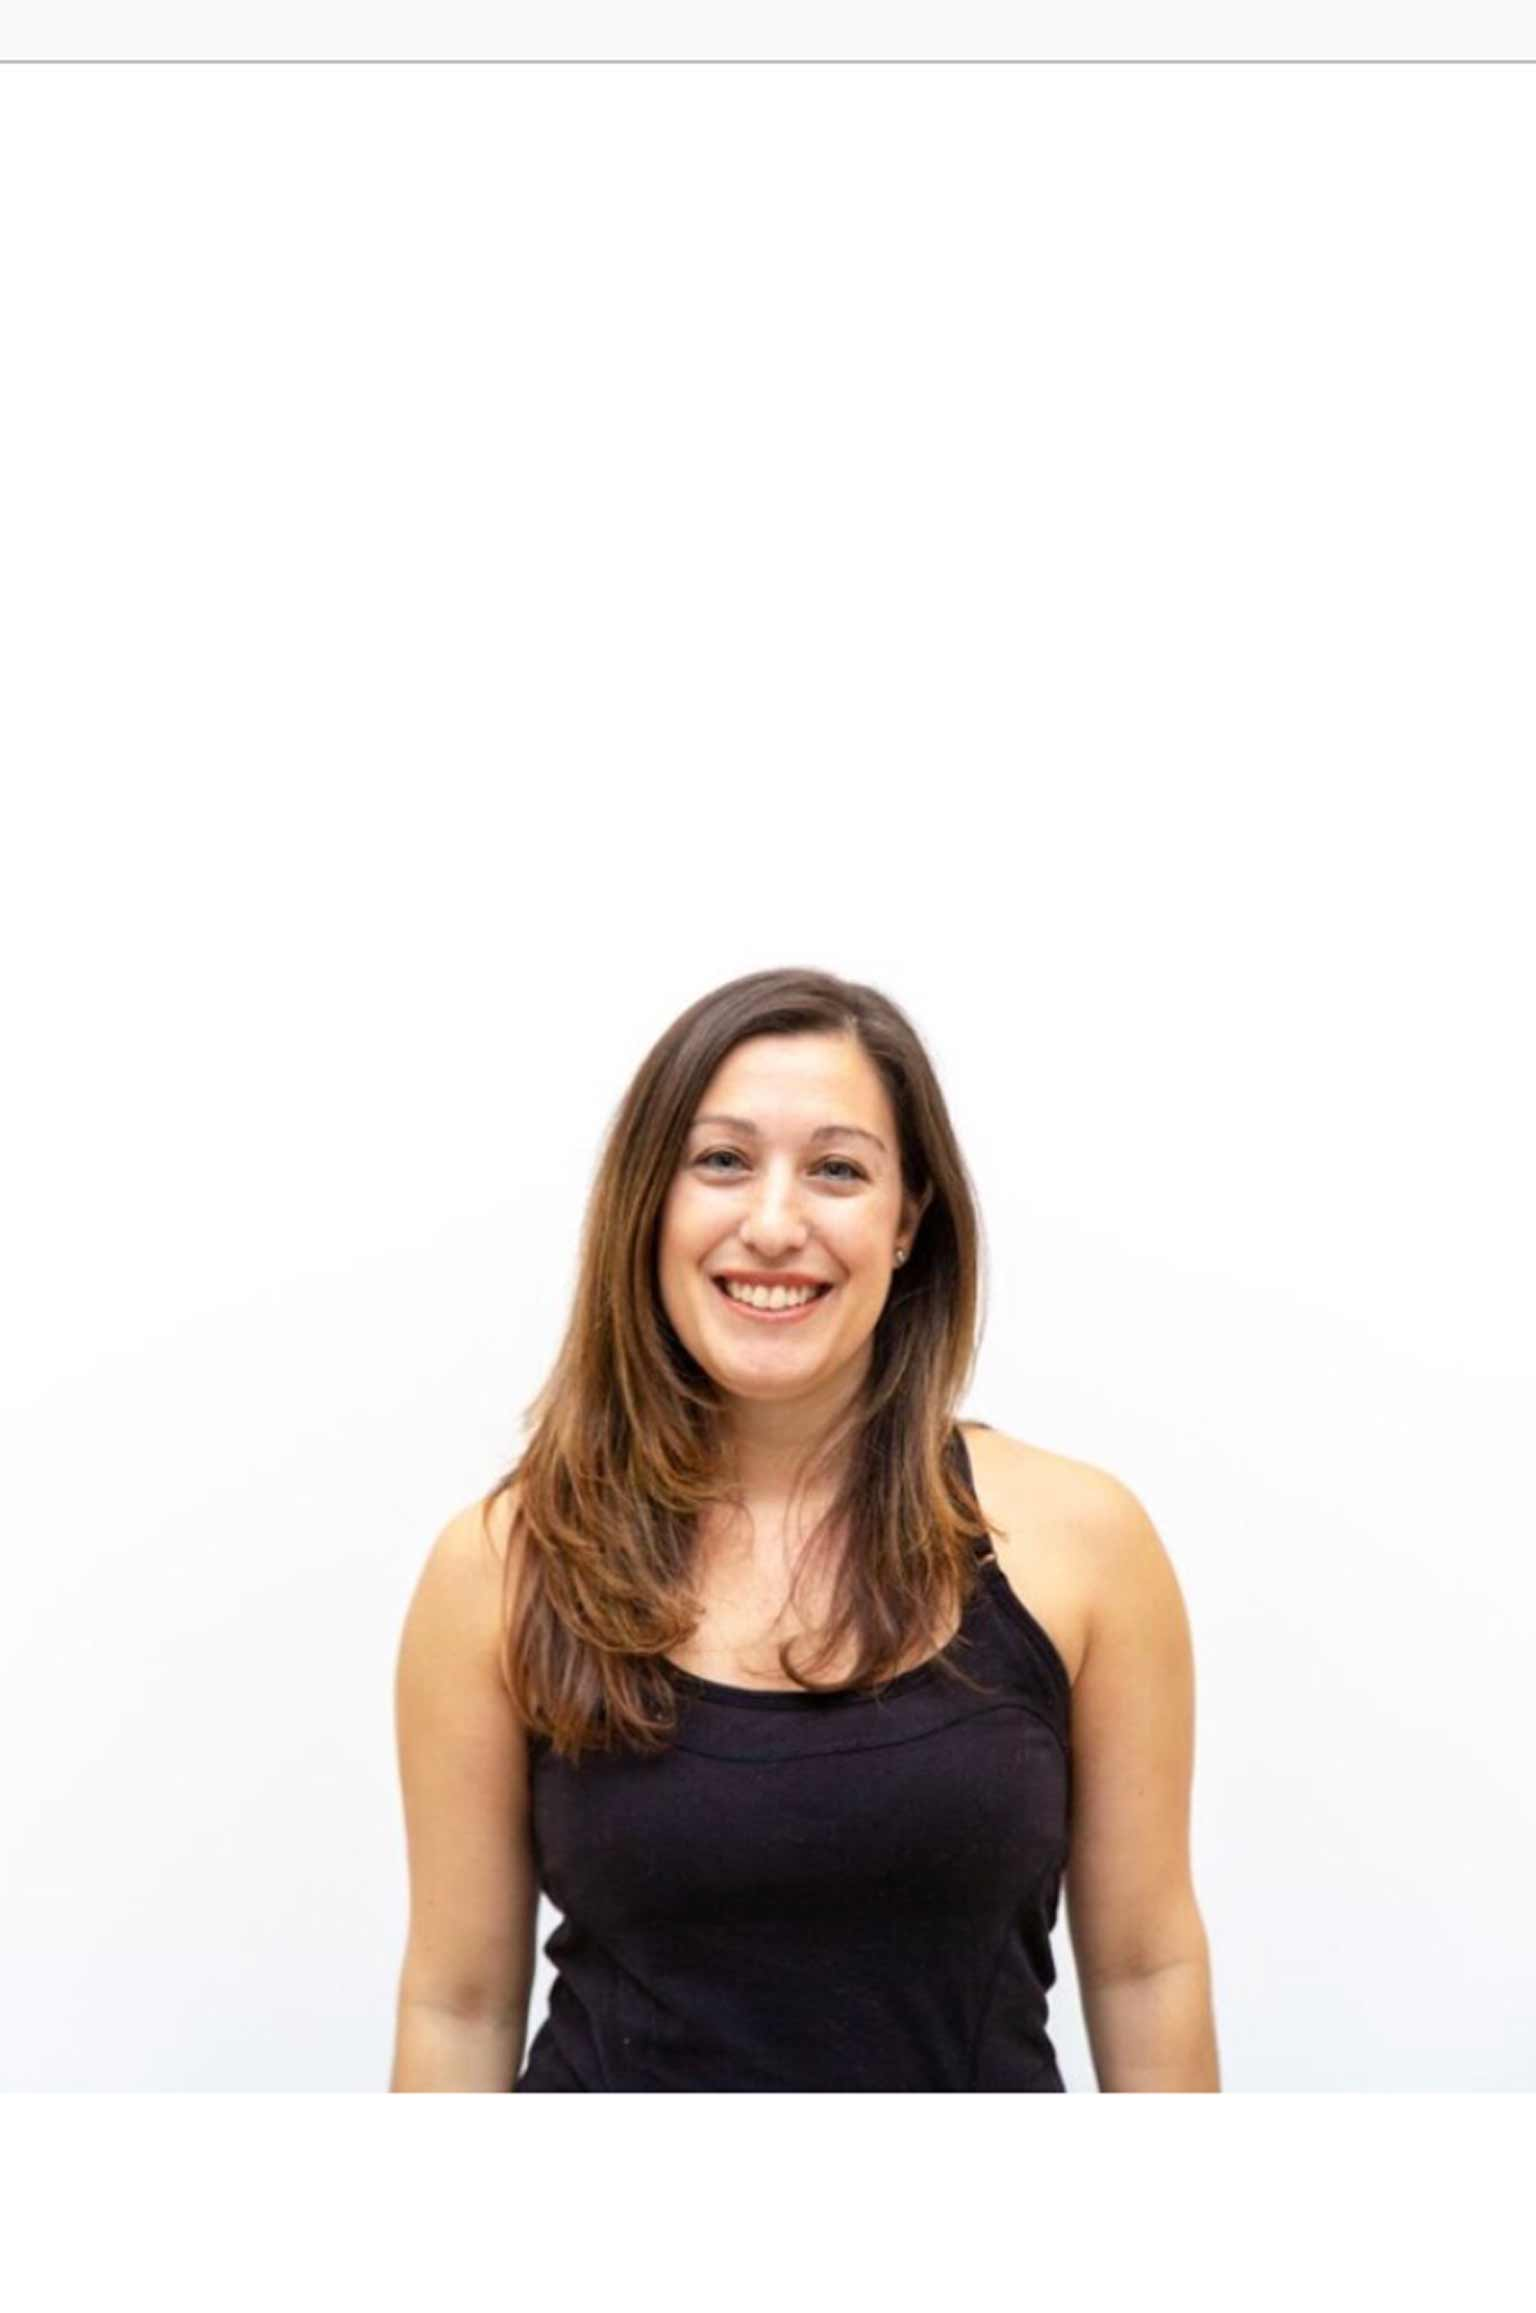 Kristen Daunais is an instructor at Precision Pilates